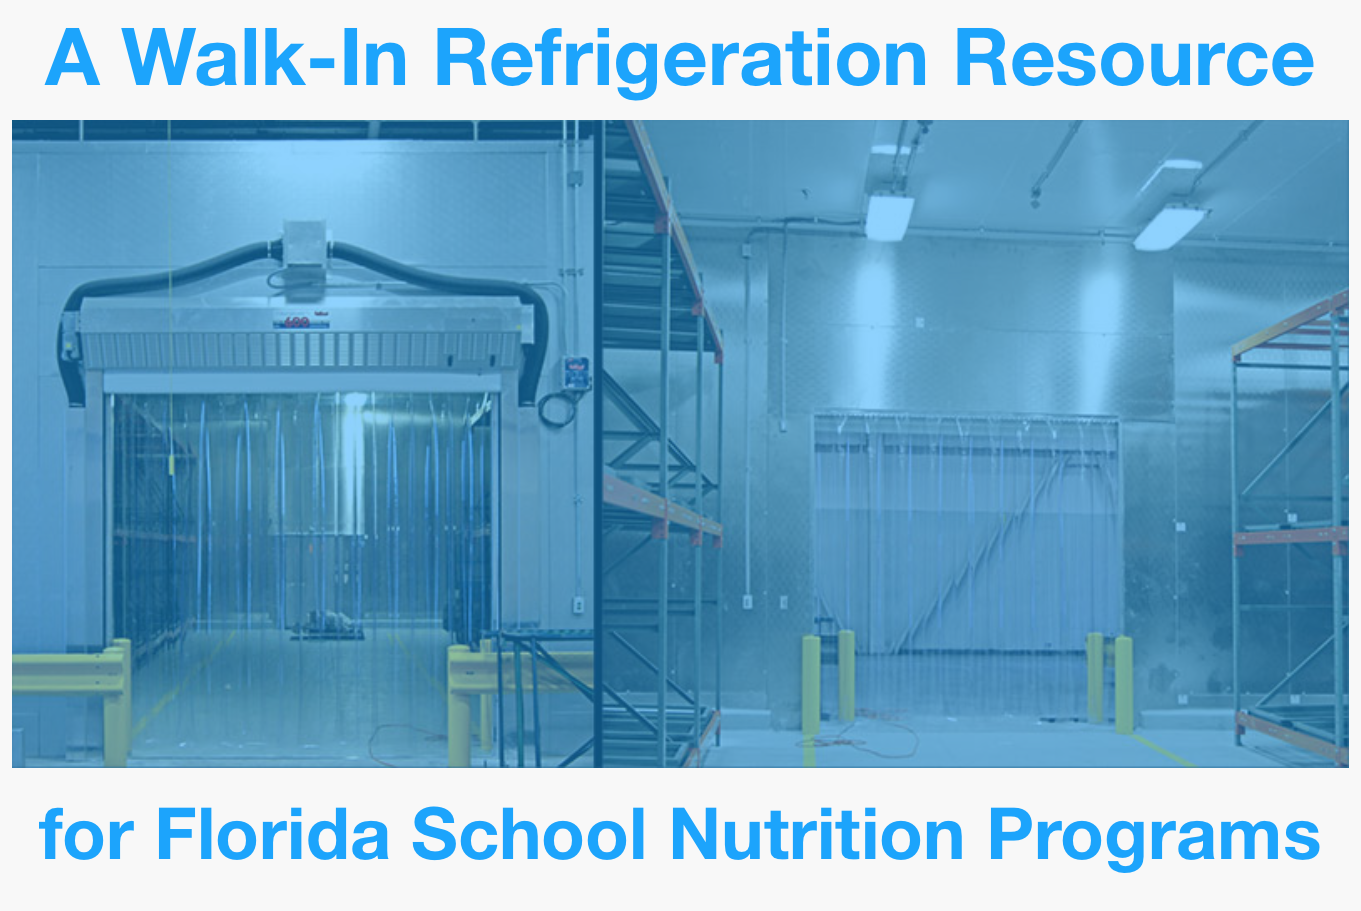 A Walk-In Refrigeration Resource for Florida School Nutrition Programs